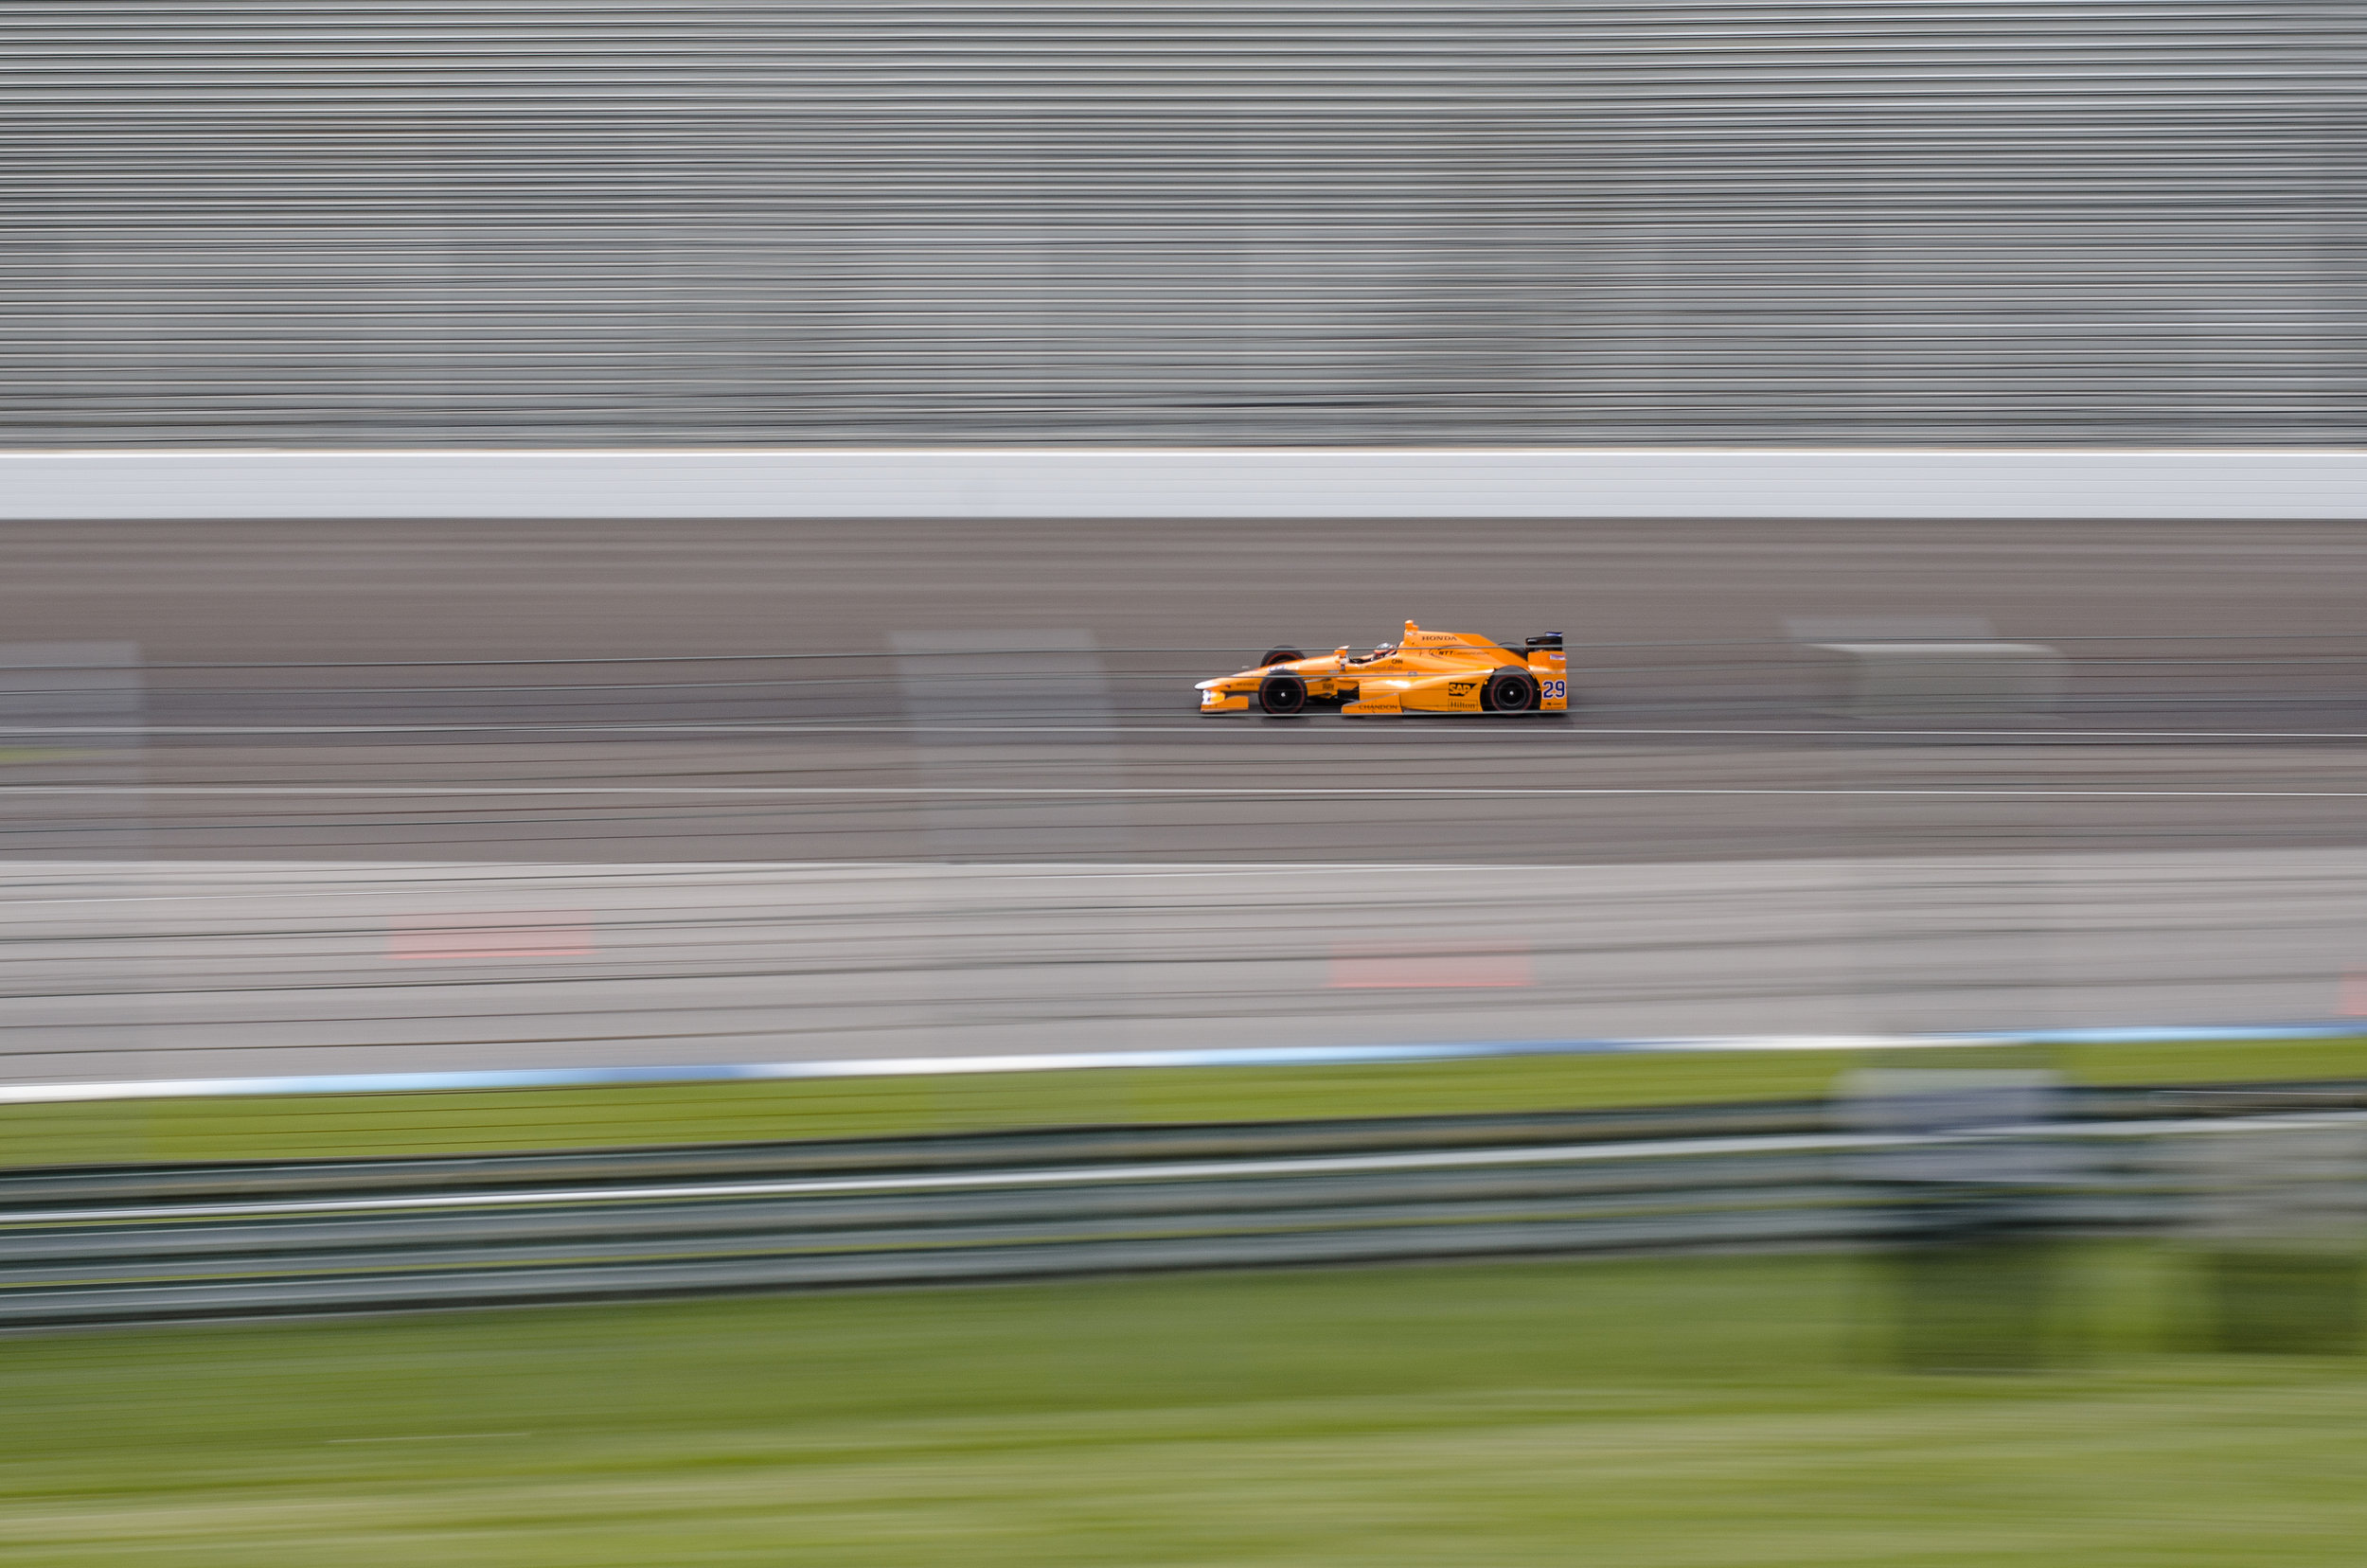 Alonso Indy Test (full size) (15 of 29).jpg